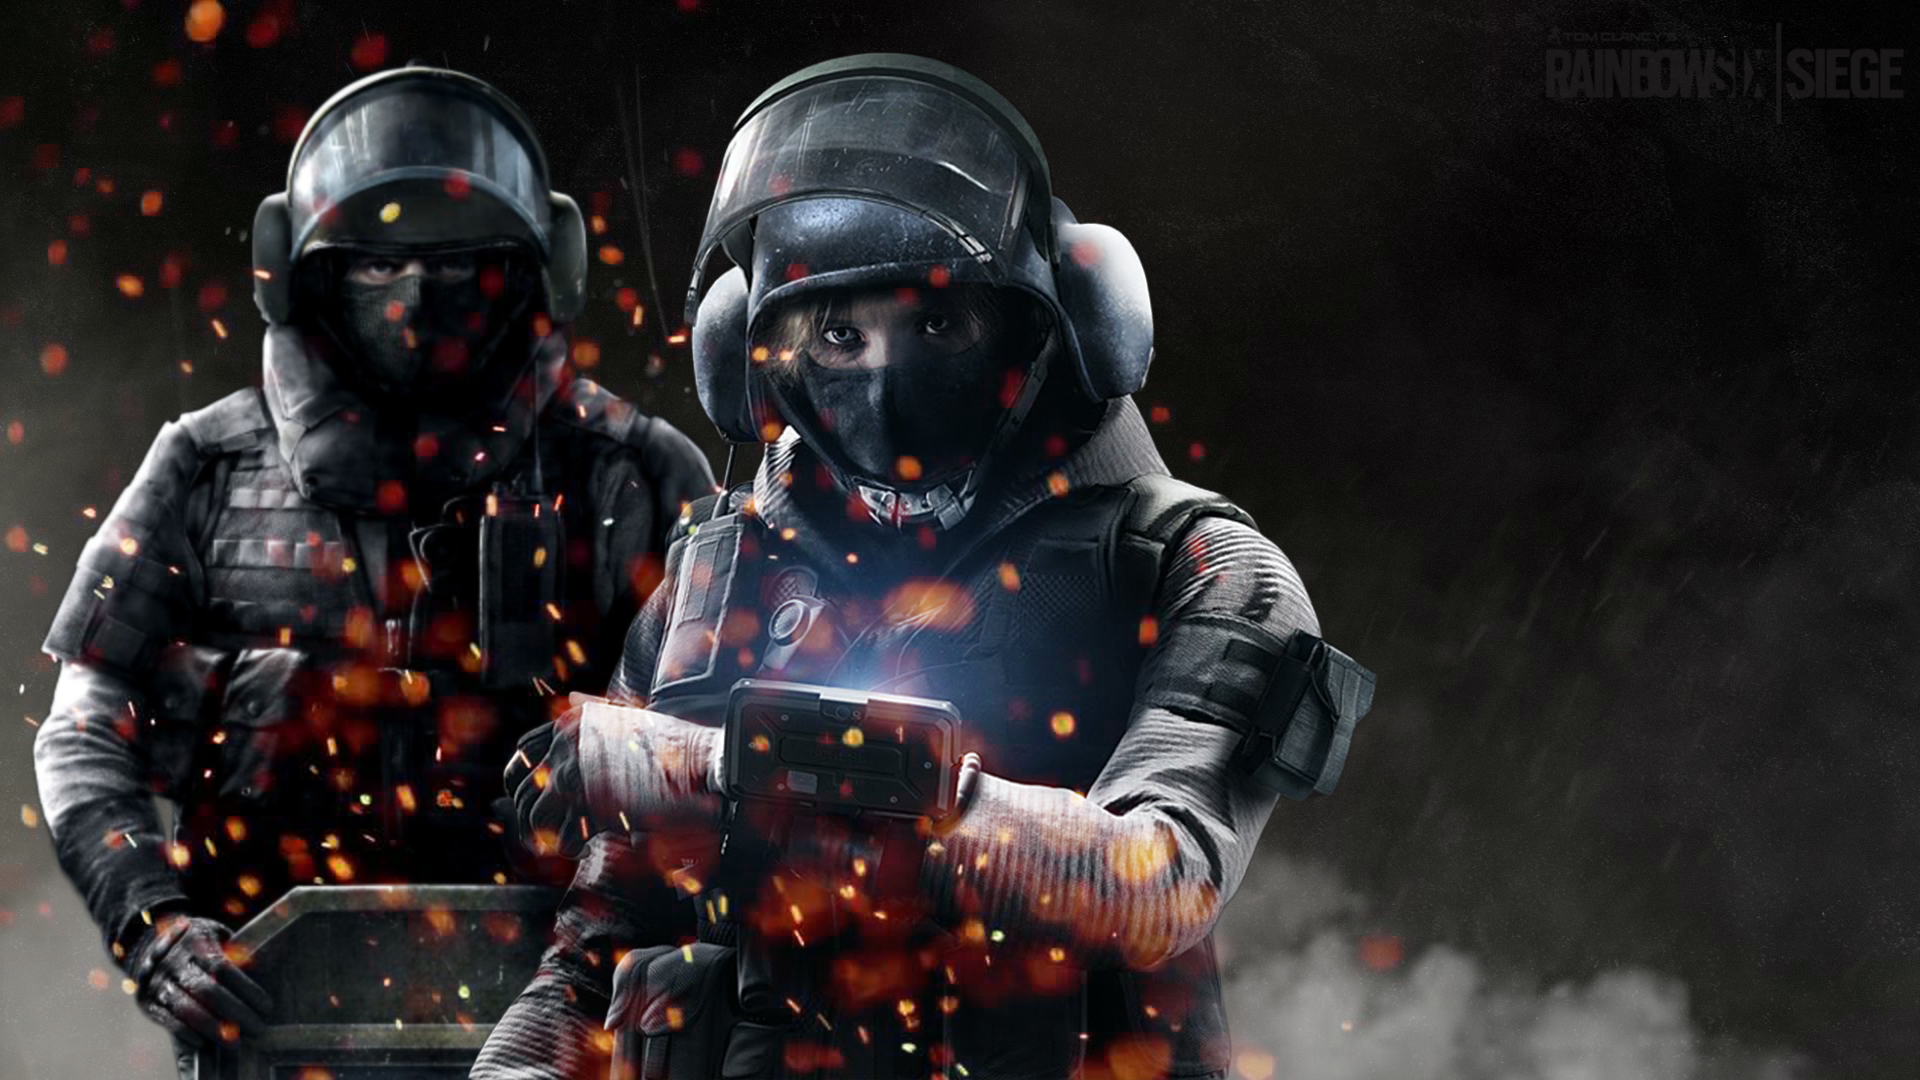 Rainbow Six Siege Iq Wallpaper: Who Here Has Good Experience In Tactical FPS Games